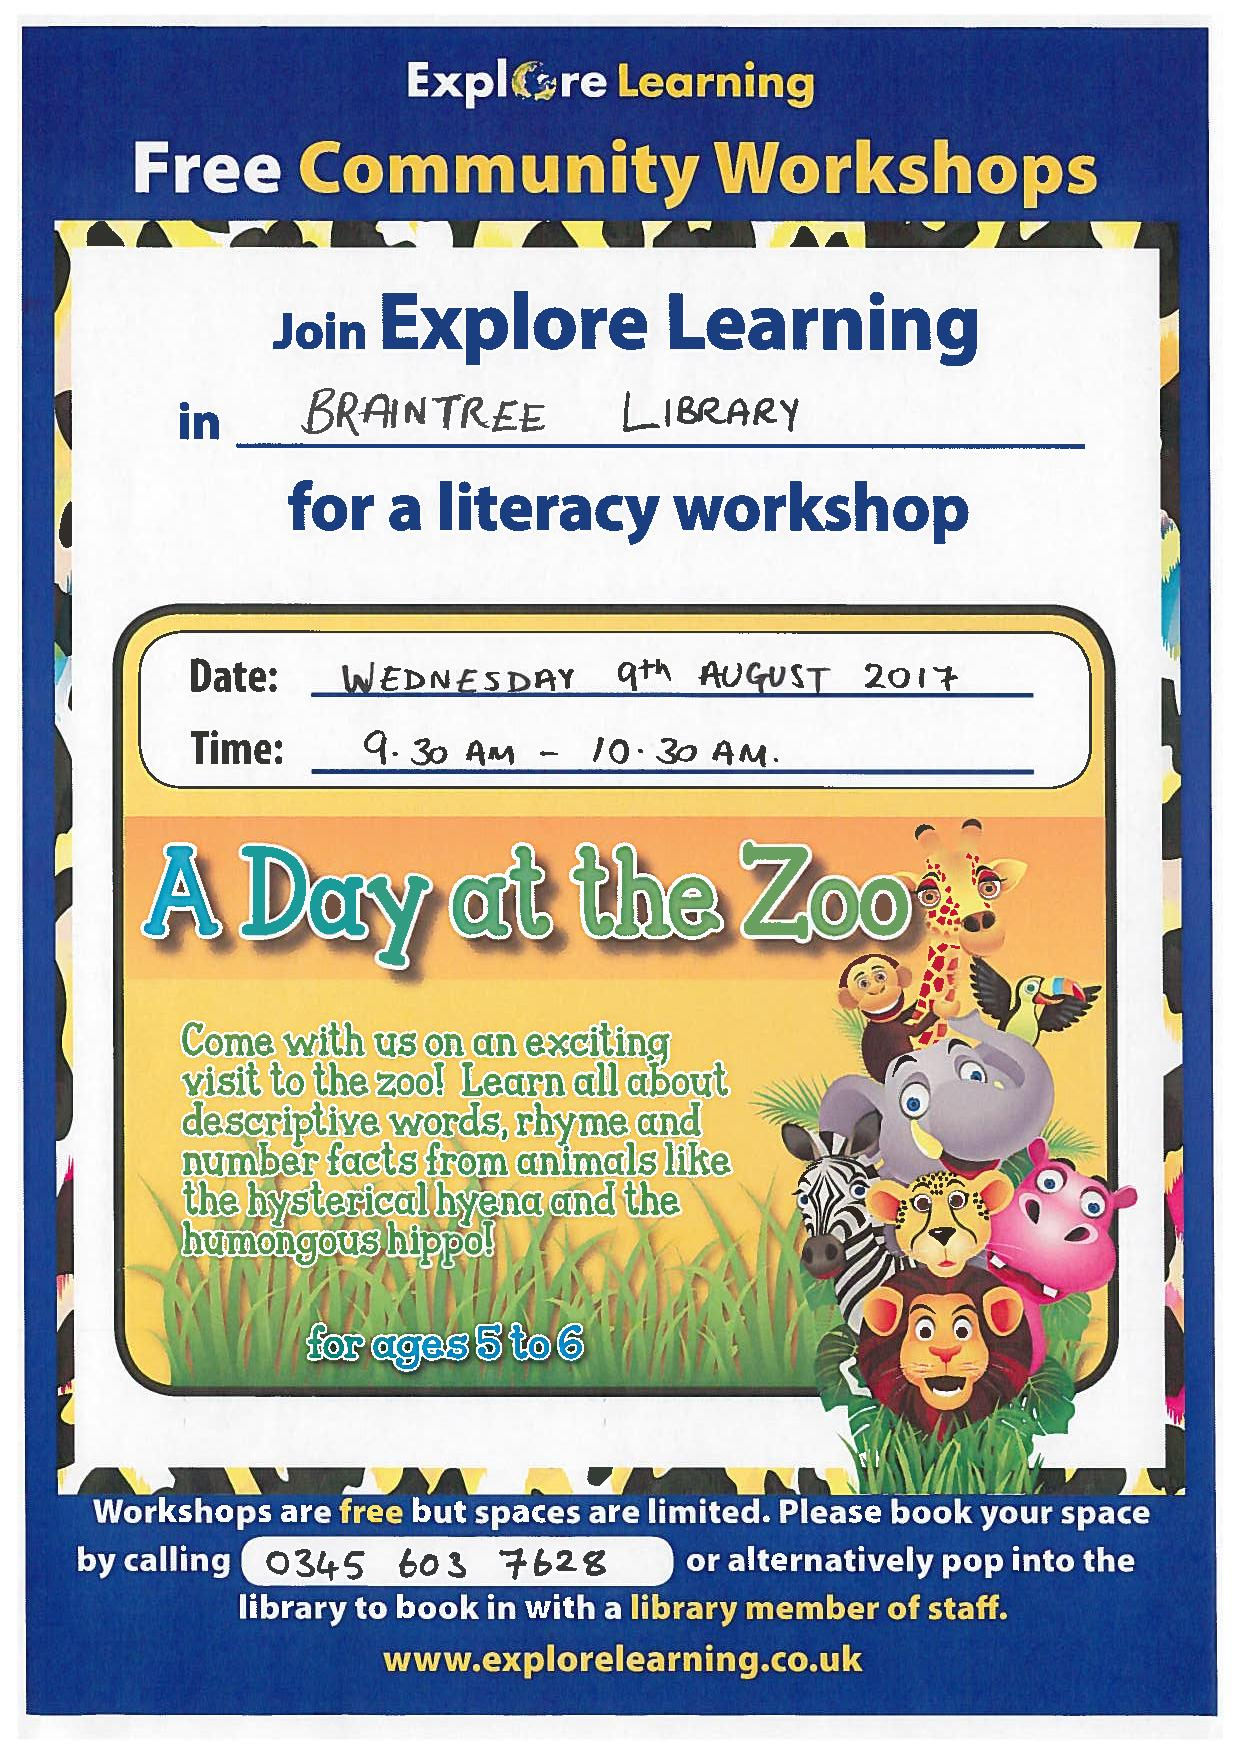 Explore Learning Children's Creative Writing Workshop